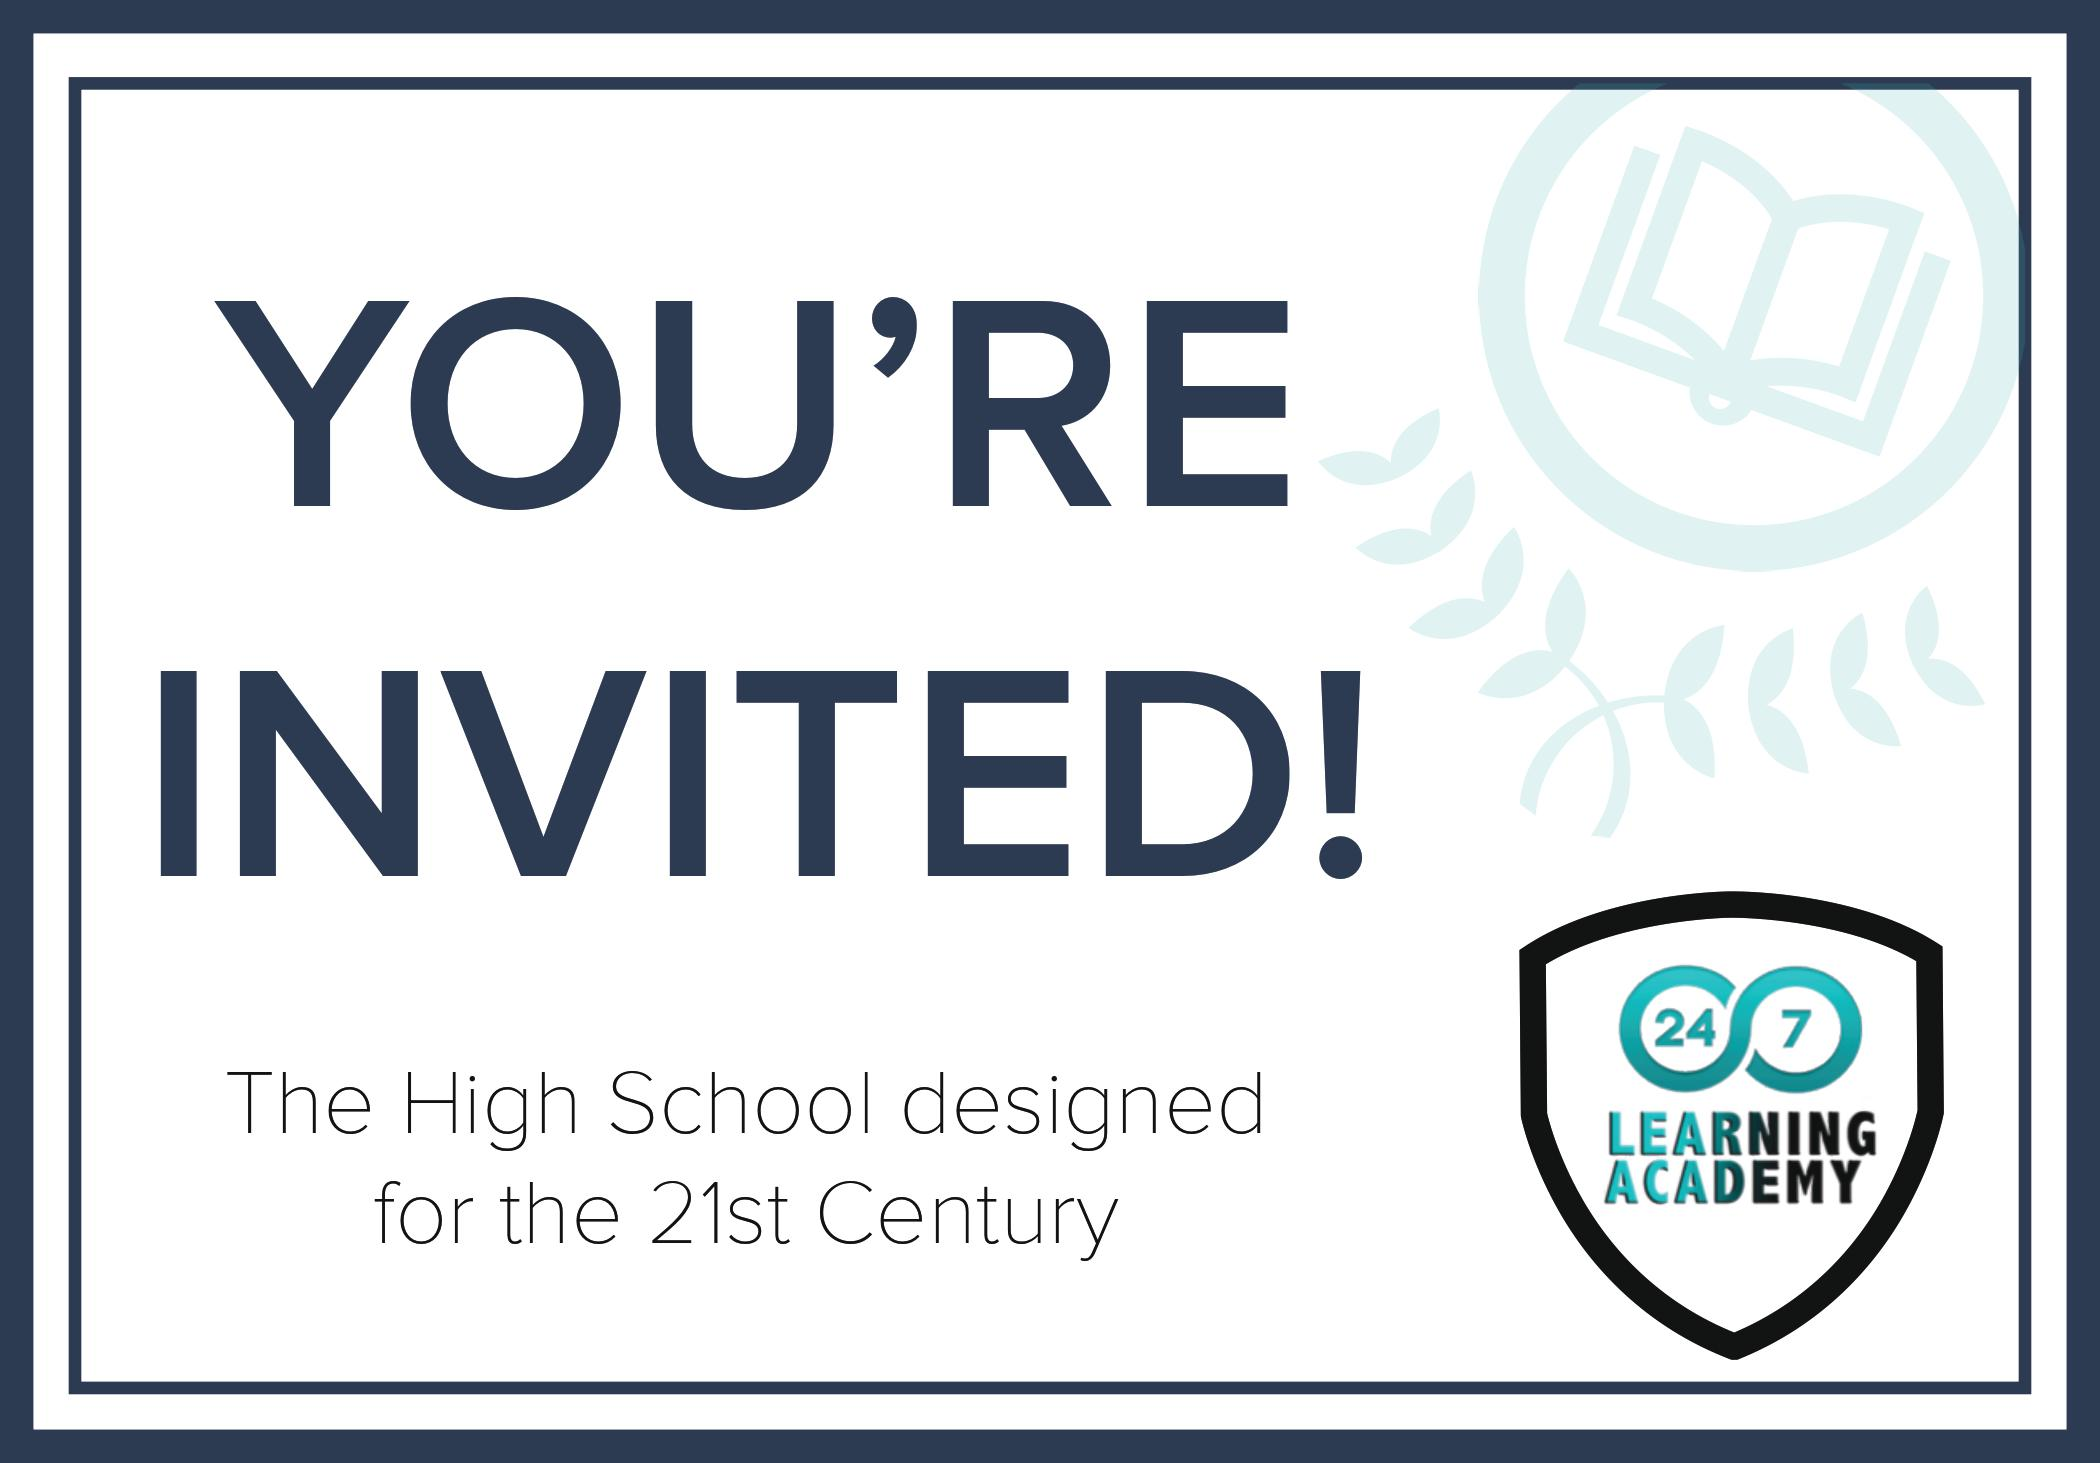 24/7 Learning Academy Open House - 4/18 and 4/25, 6:30 Pm to 8:30 PM.